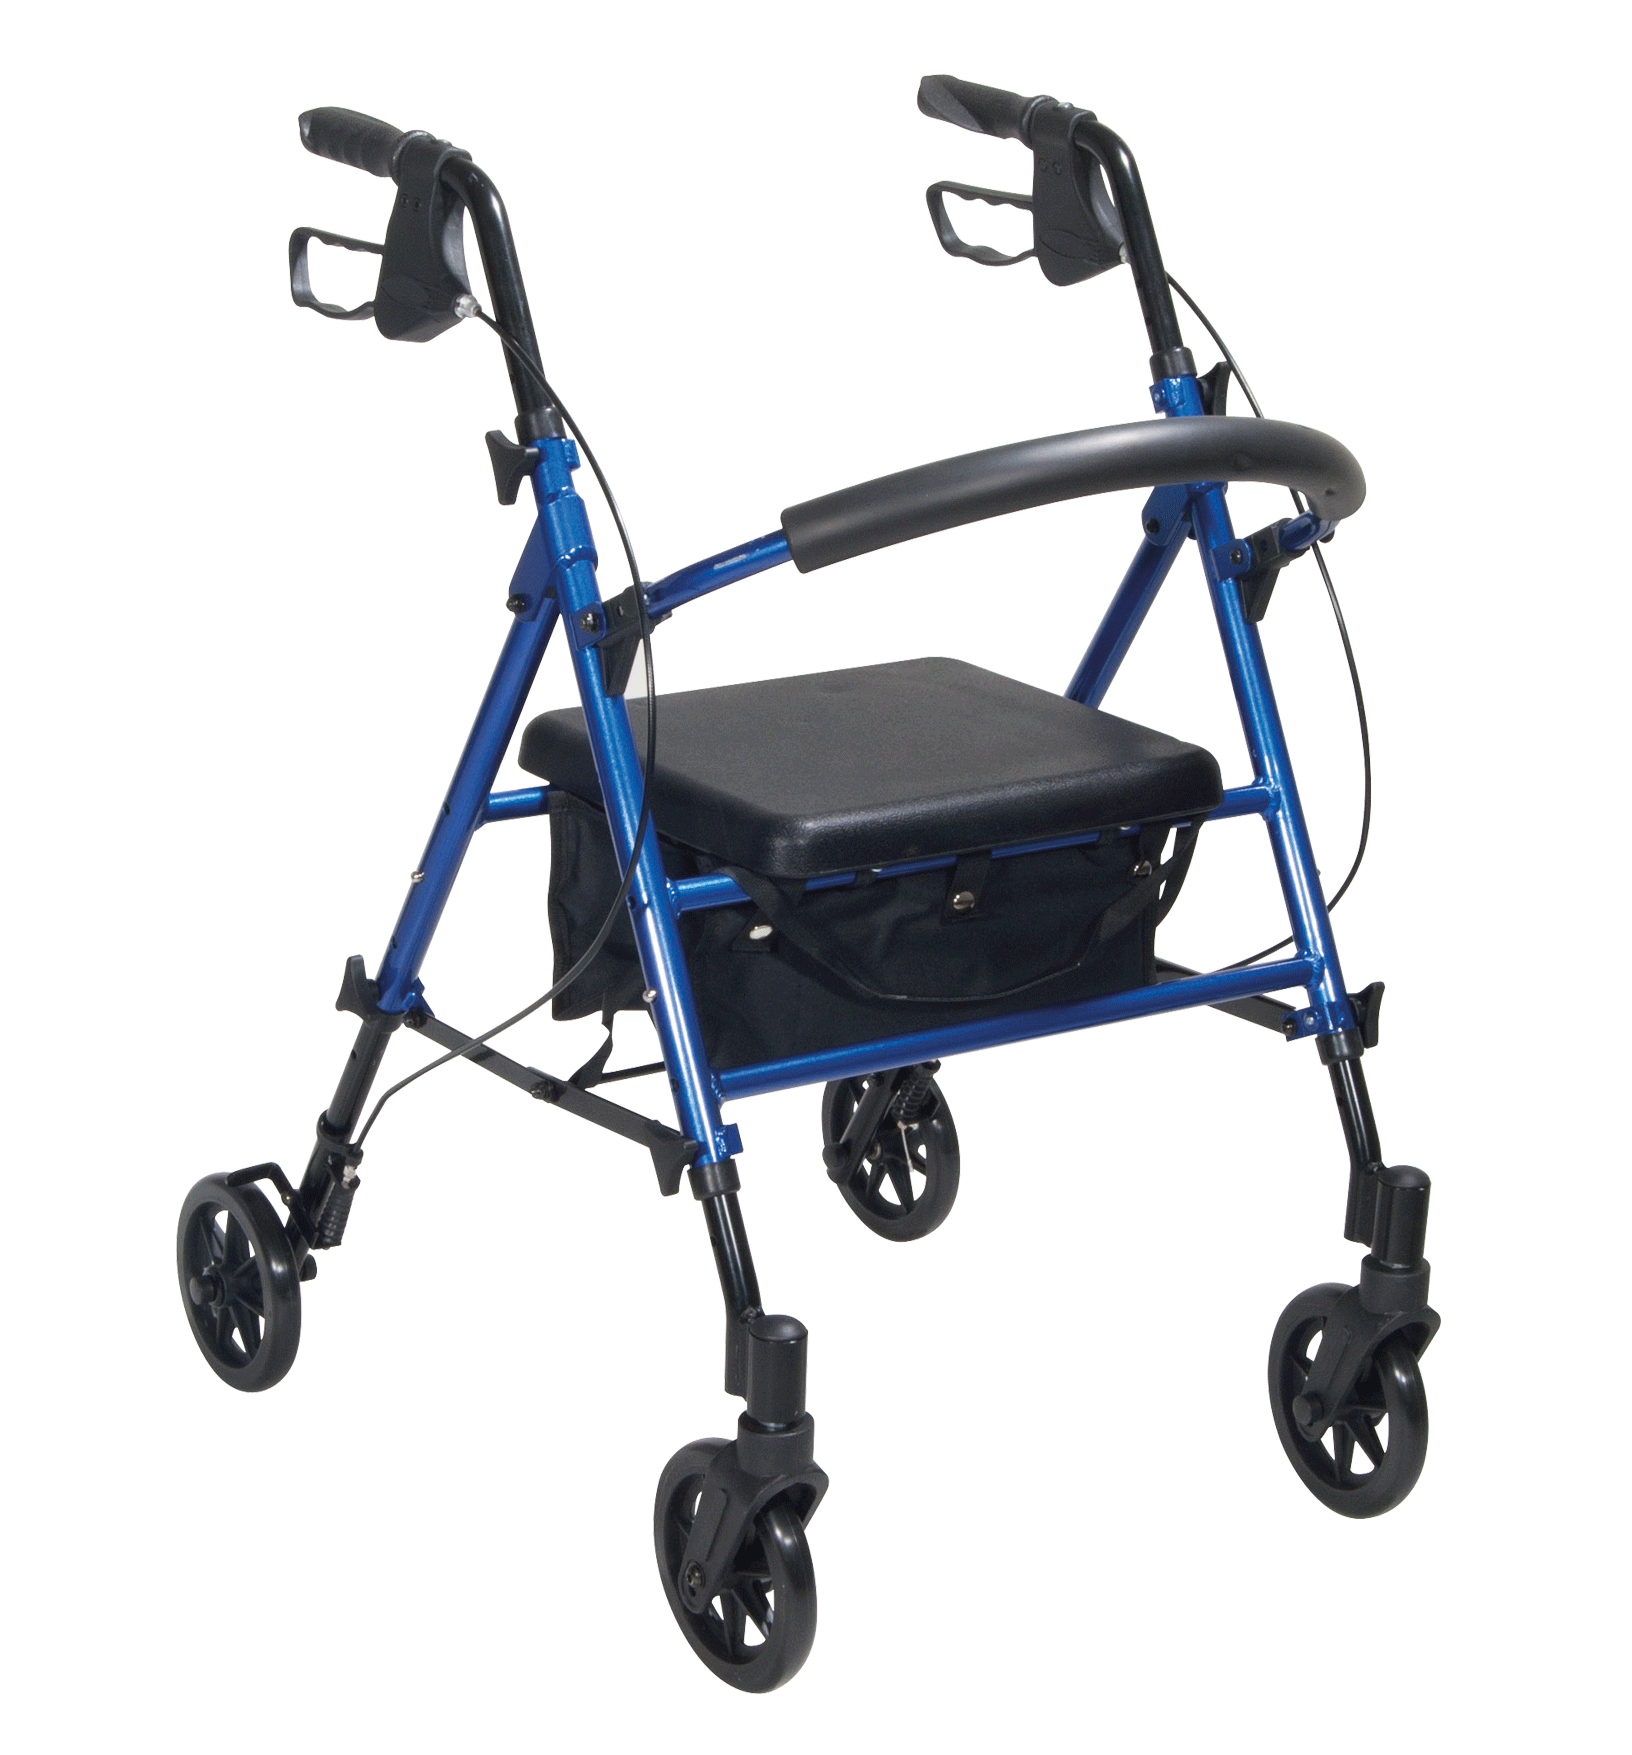 Drive - Adjustable Seat Height Walker / Rollator Vivid Blue R8BLHAAU by Drive